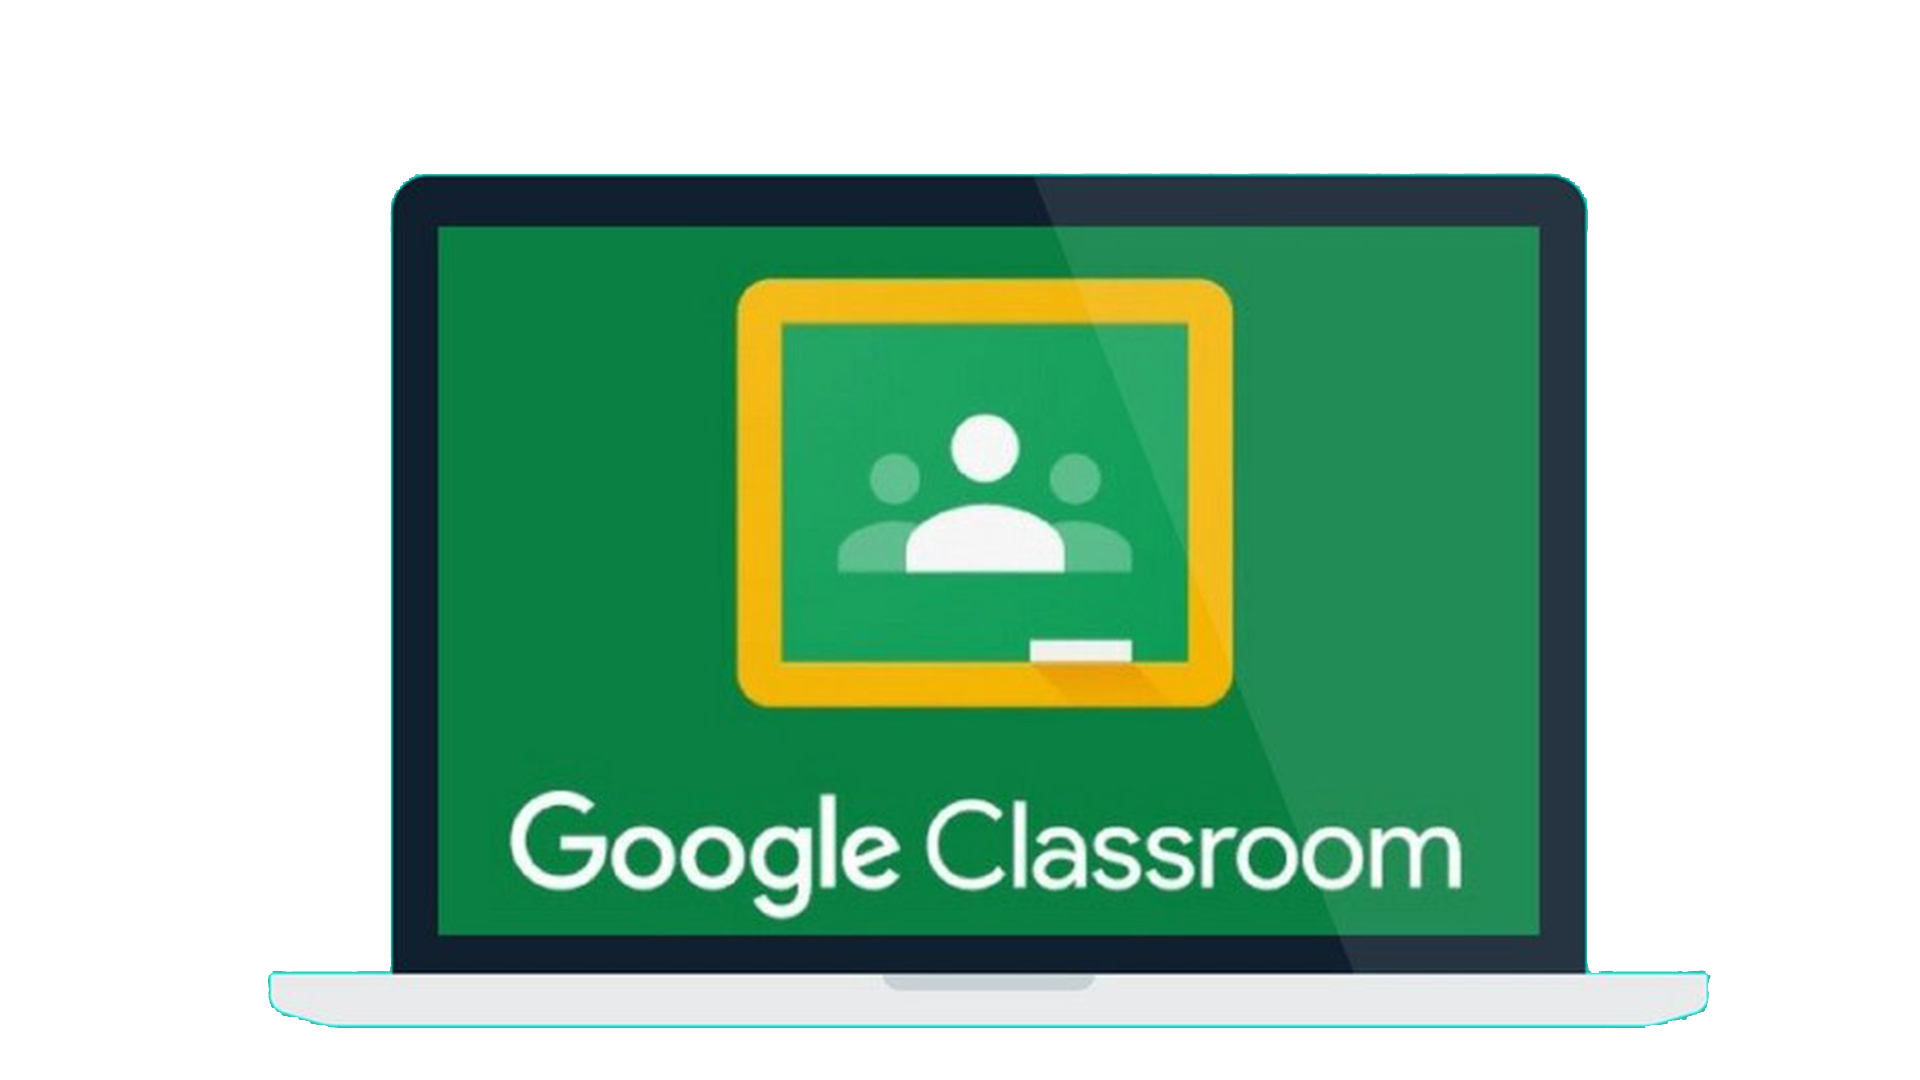 Google Classroom Video Tutorials